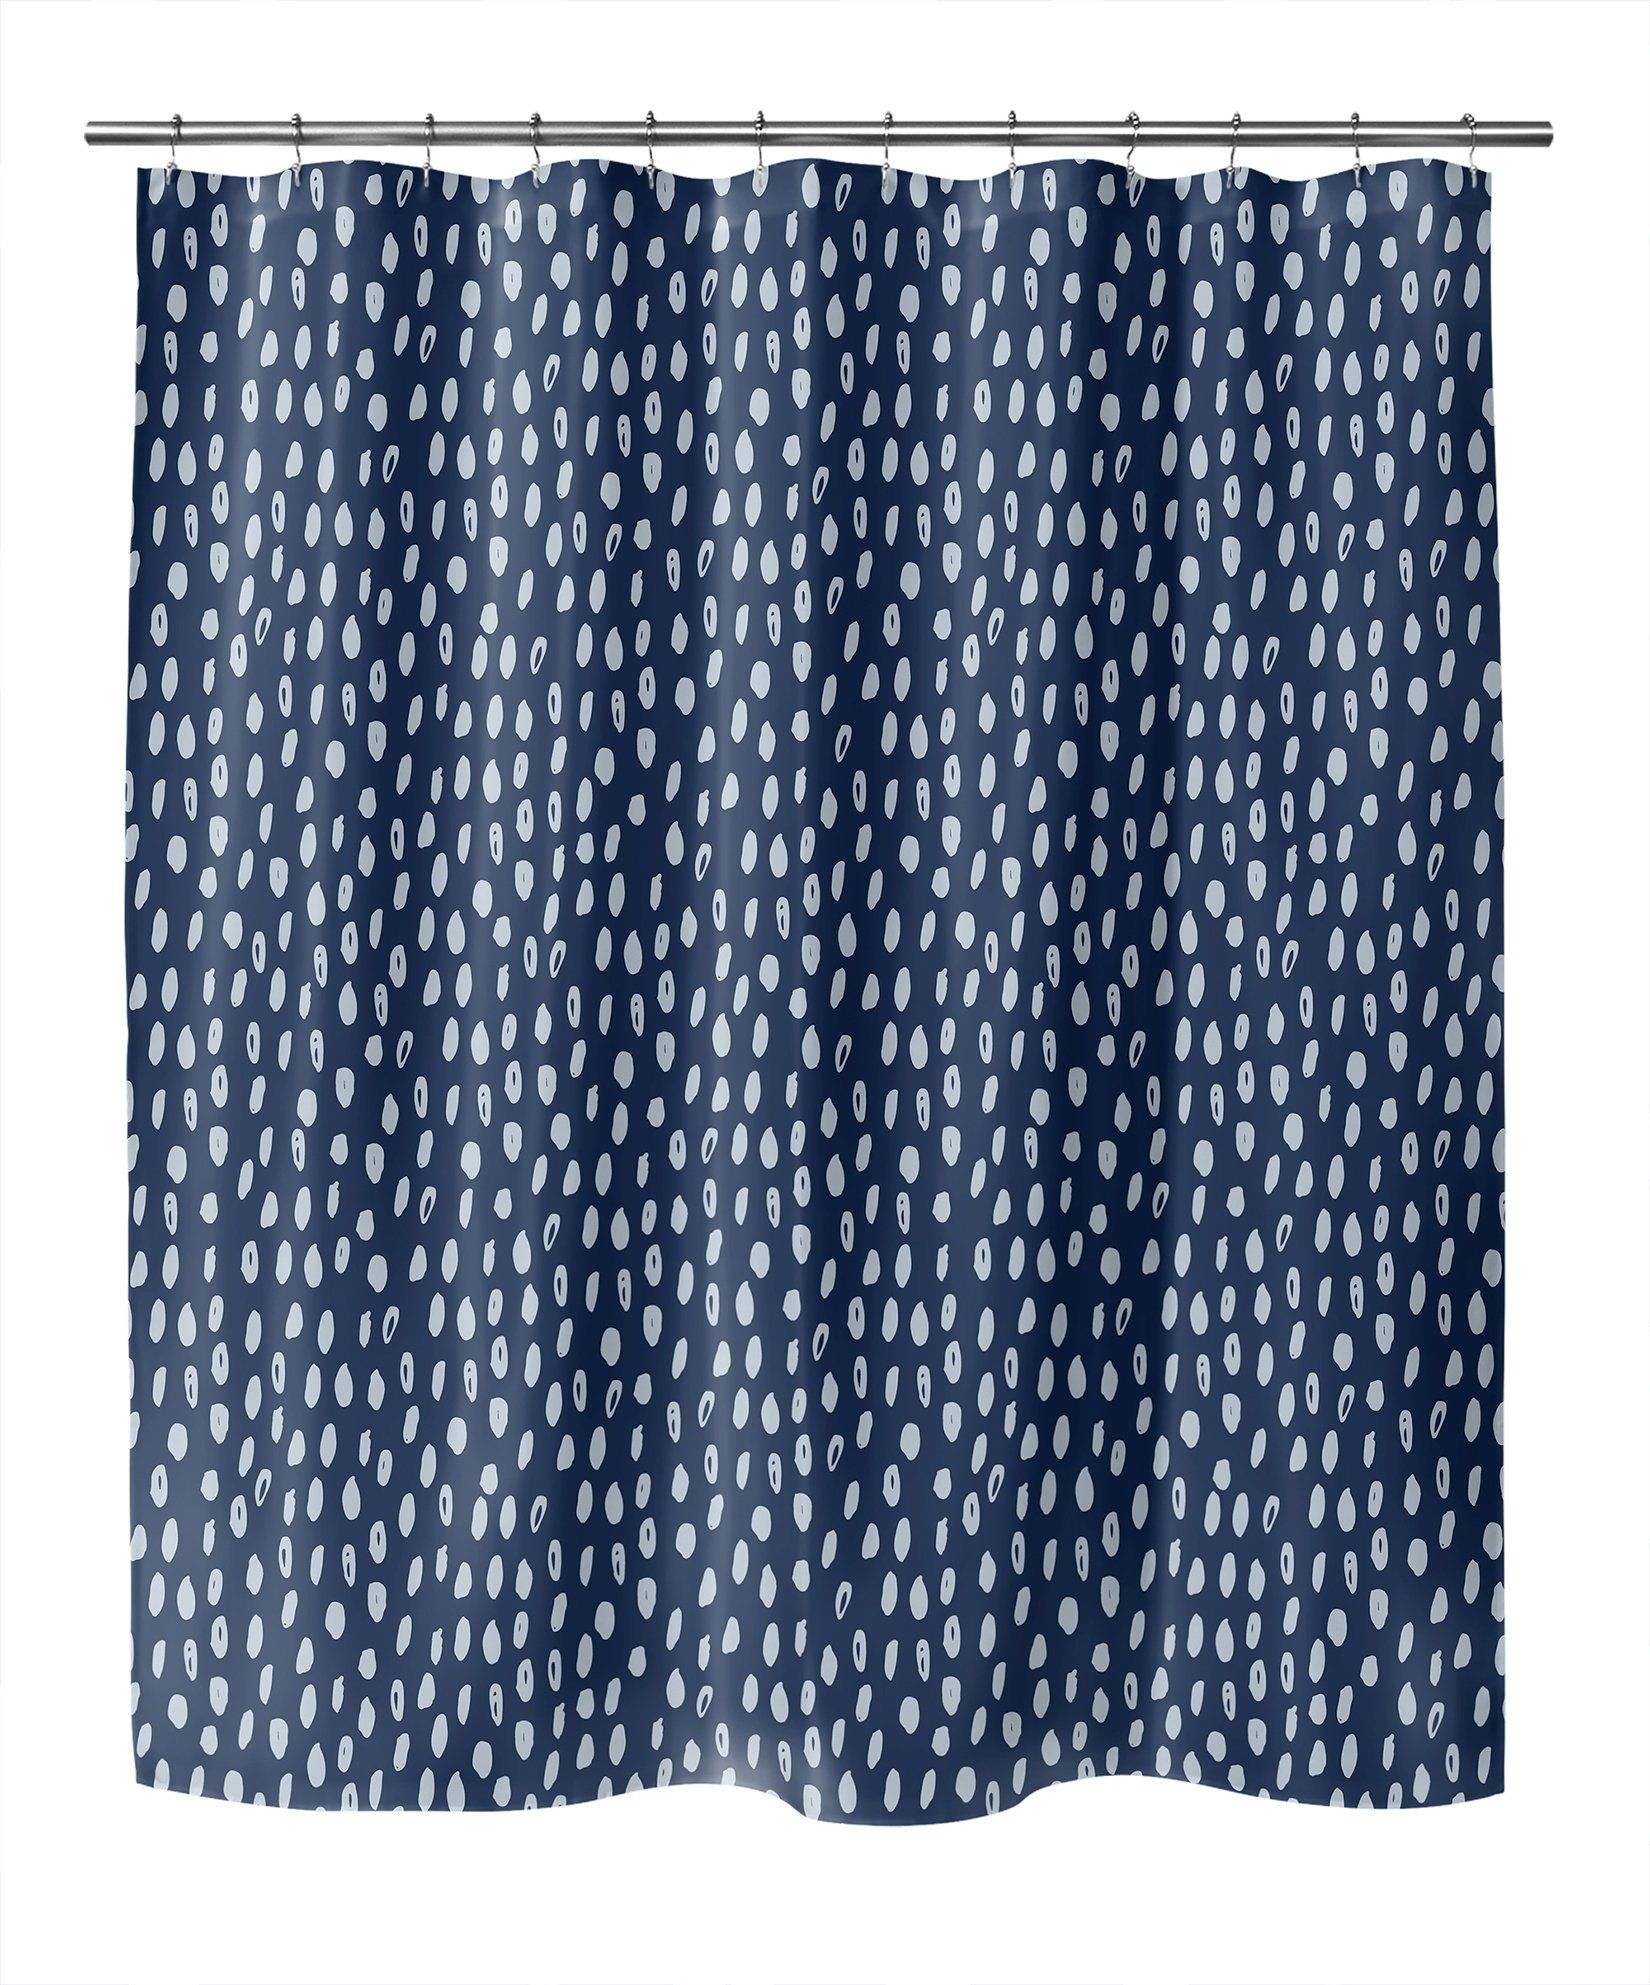 Photo of POLKA DOT ABSTRACT NAVY Shower Curtain By Kavka Designs – 70in x 72in